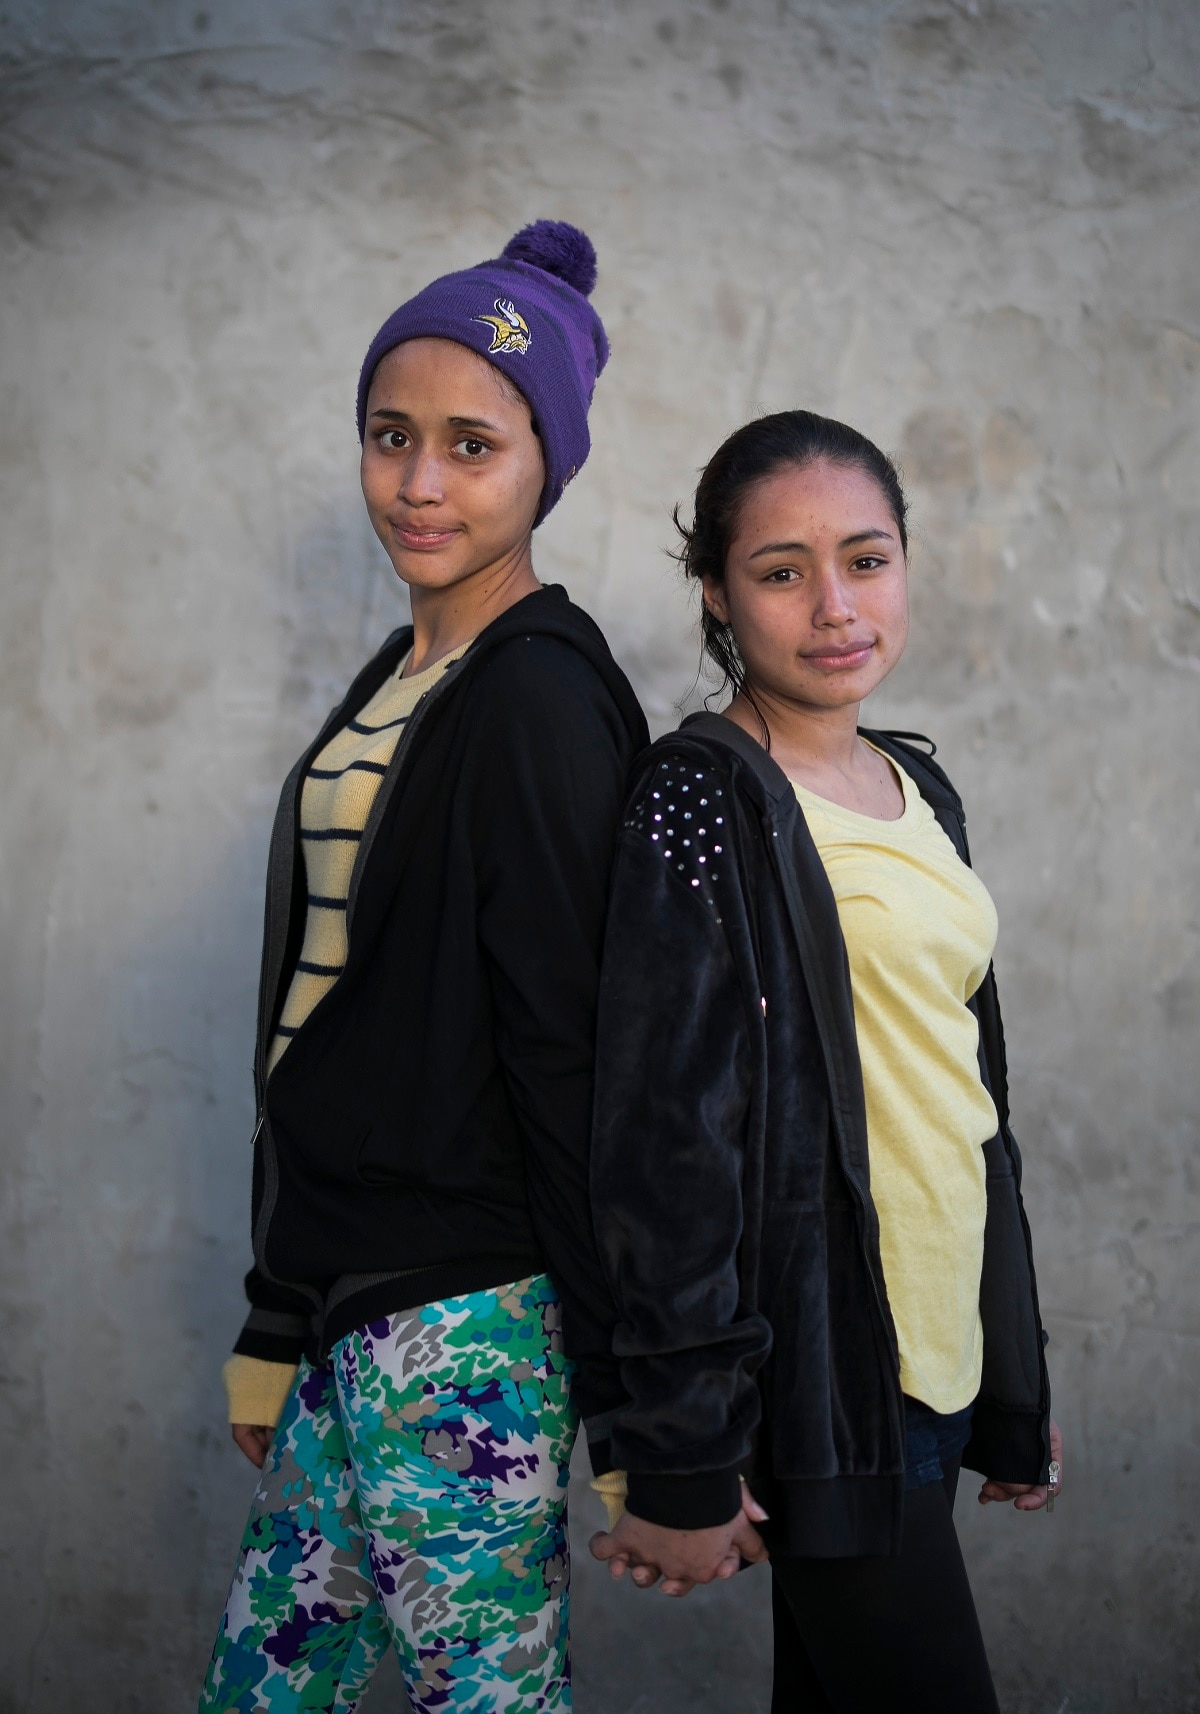 El Salvador migrant sisters 15-year-old Milagro de Jesus Henriquez Ayala, left, and Xiomara, 13, pose for a portrait at the Agape World Mission shelter in Tijuana, Mexico. The girls say they are too afraid to cross the border illegally after seeing the towering wall topped with concertina wire, especially since Milagro is nearly six months pregnant. (AP Photo/Emilio Espejel)